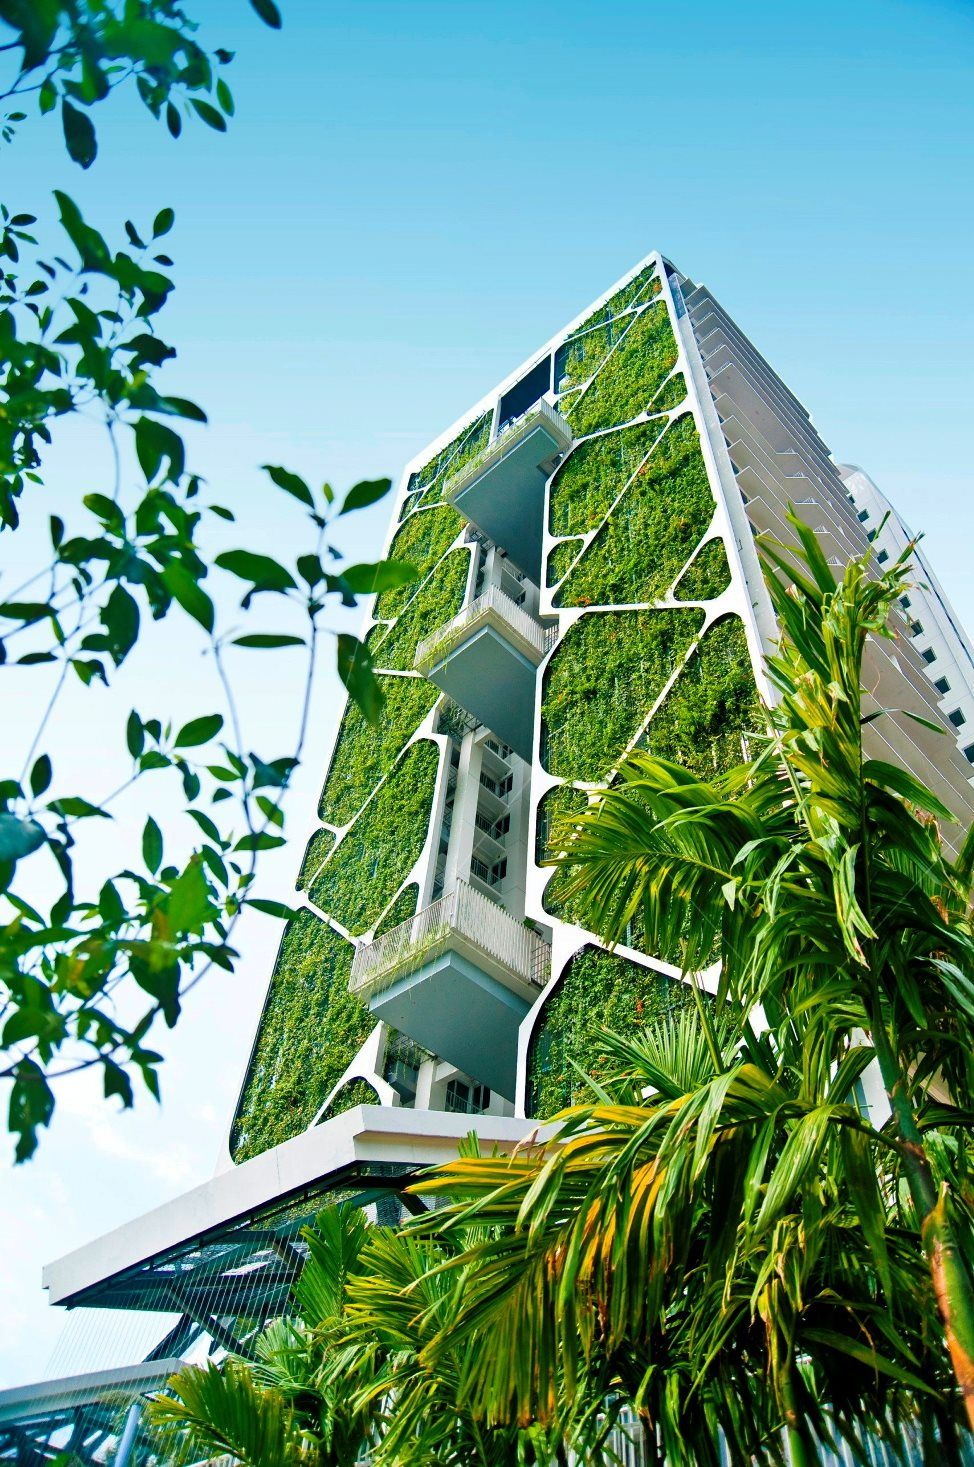 Green architecture singapur environnement cologique for Architecture futuriste ecologique